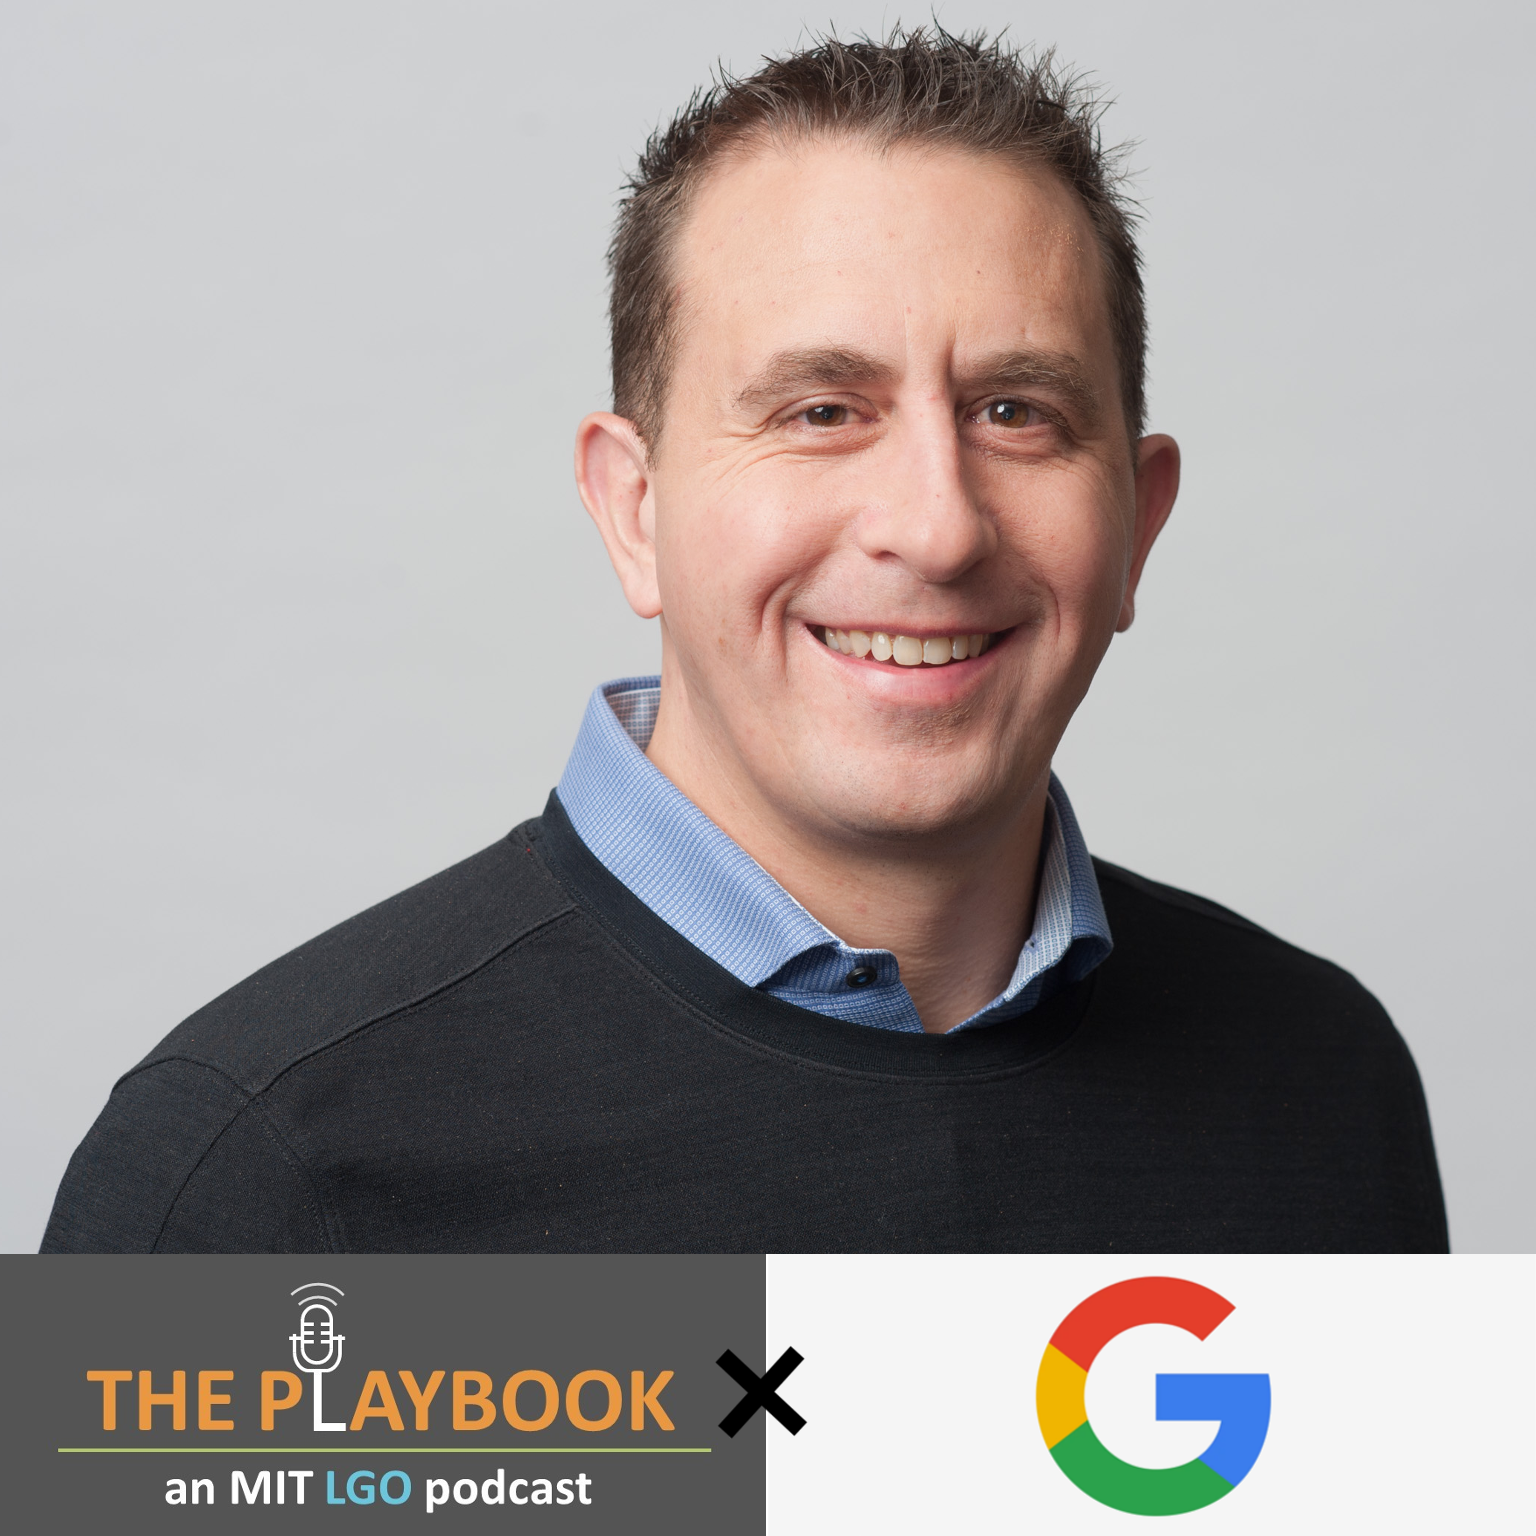 Check out the third episode of our new Sloan/LGO podcast - The Playbook! Matt Vokoun explains Google